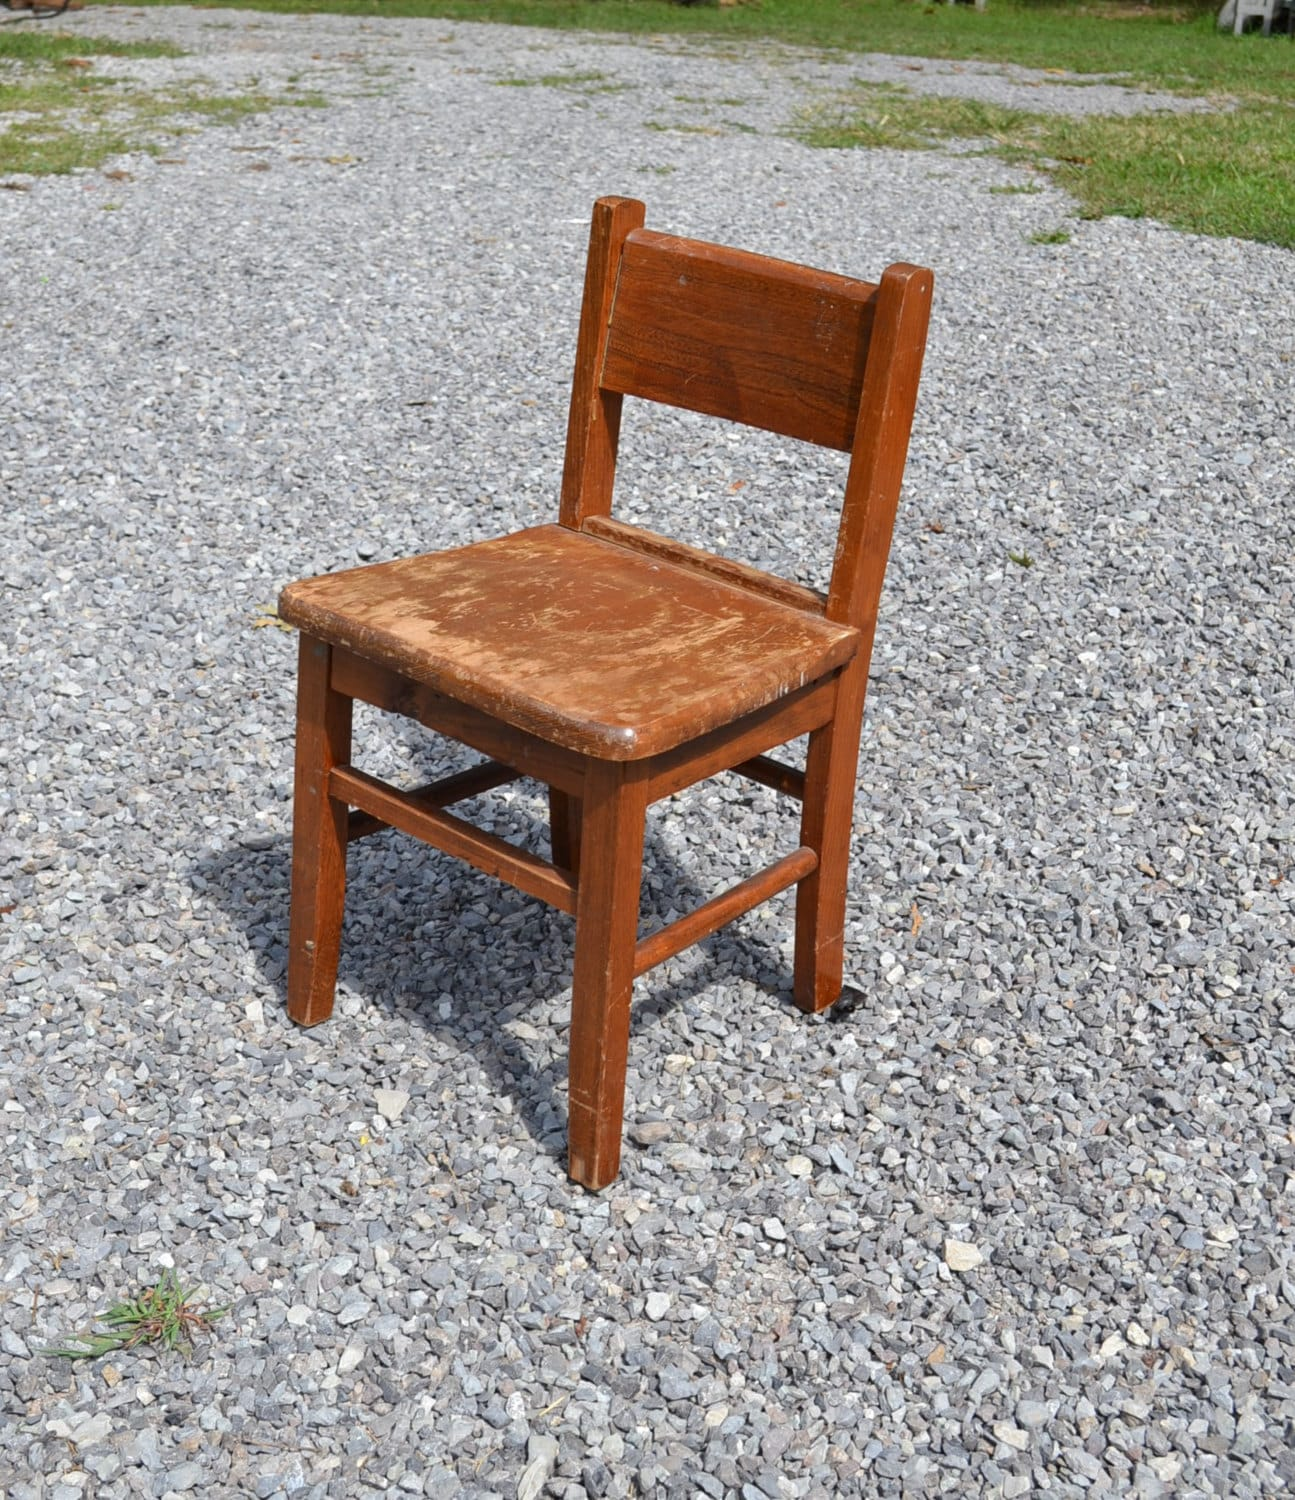 Vintage Wood School Desk Chair Child Size Kids Childrens Craft